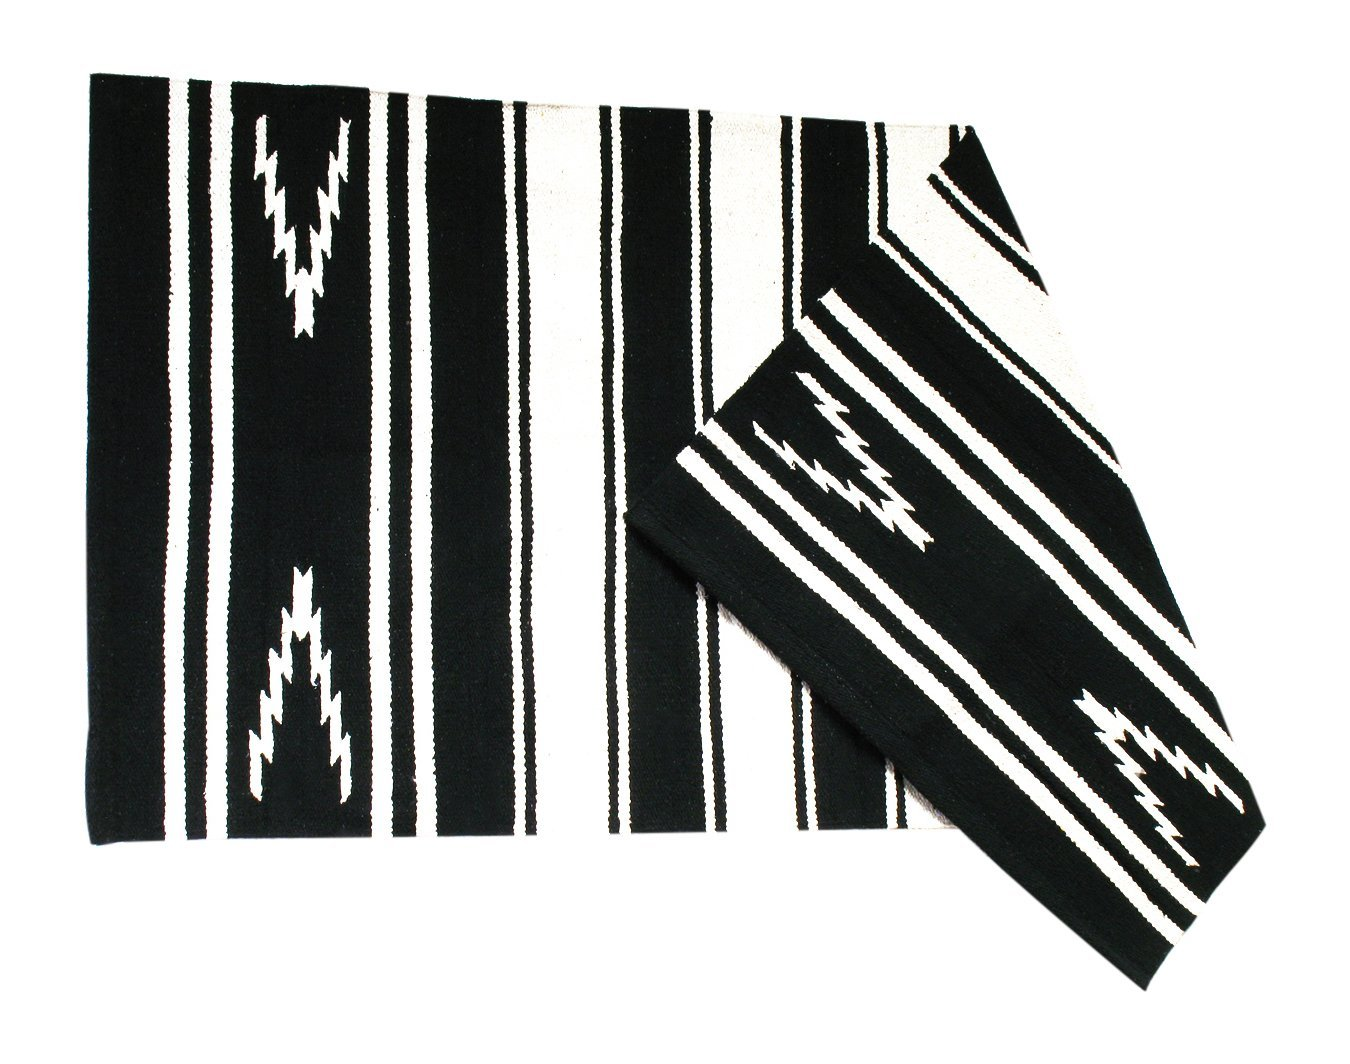 JF Equestrian Saddle Navajo Blanket Delg Ado – Black, One Size, 270041 0006 VMWE5|#VM Western Sports 270041-0006